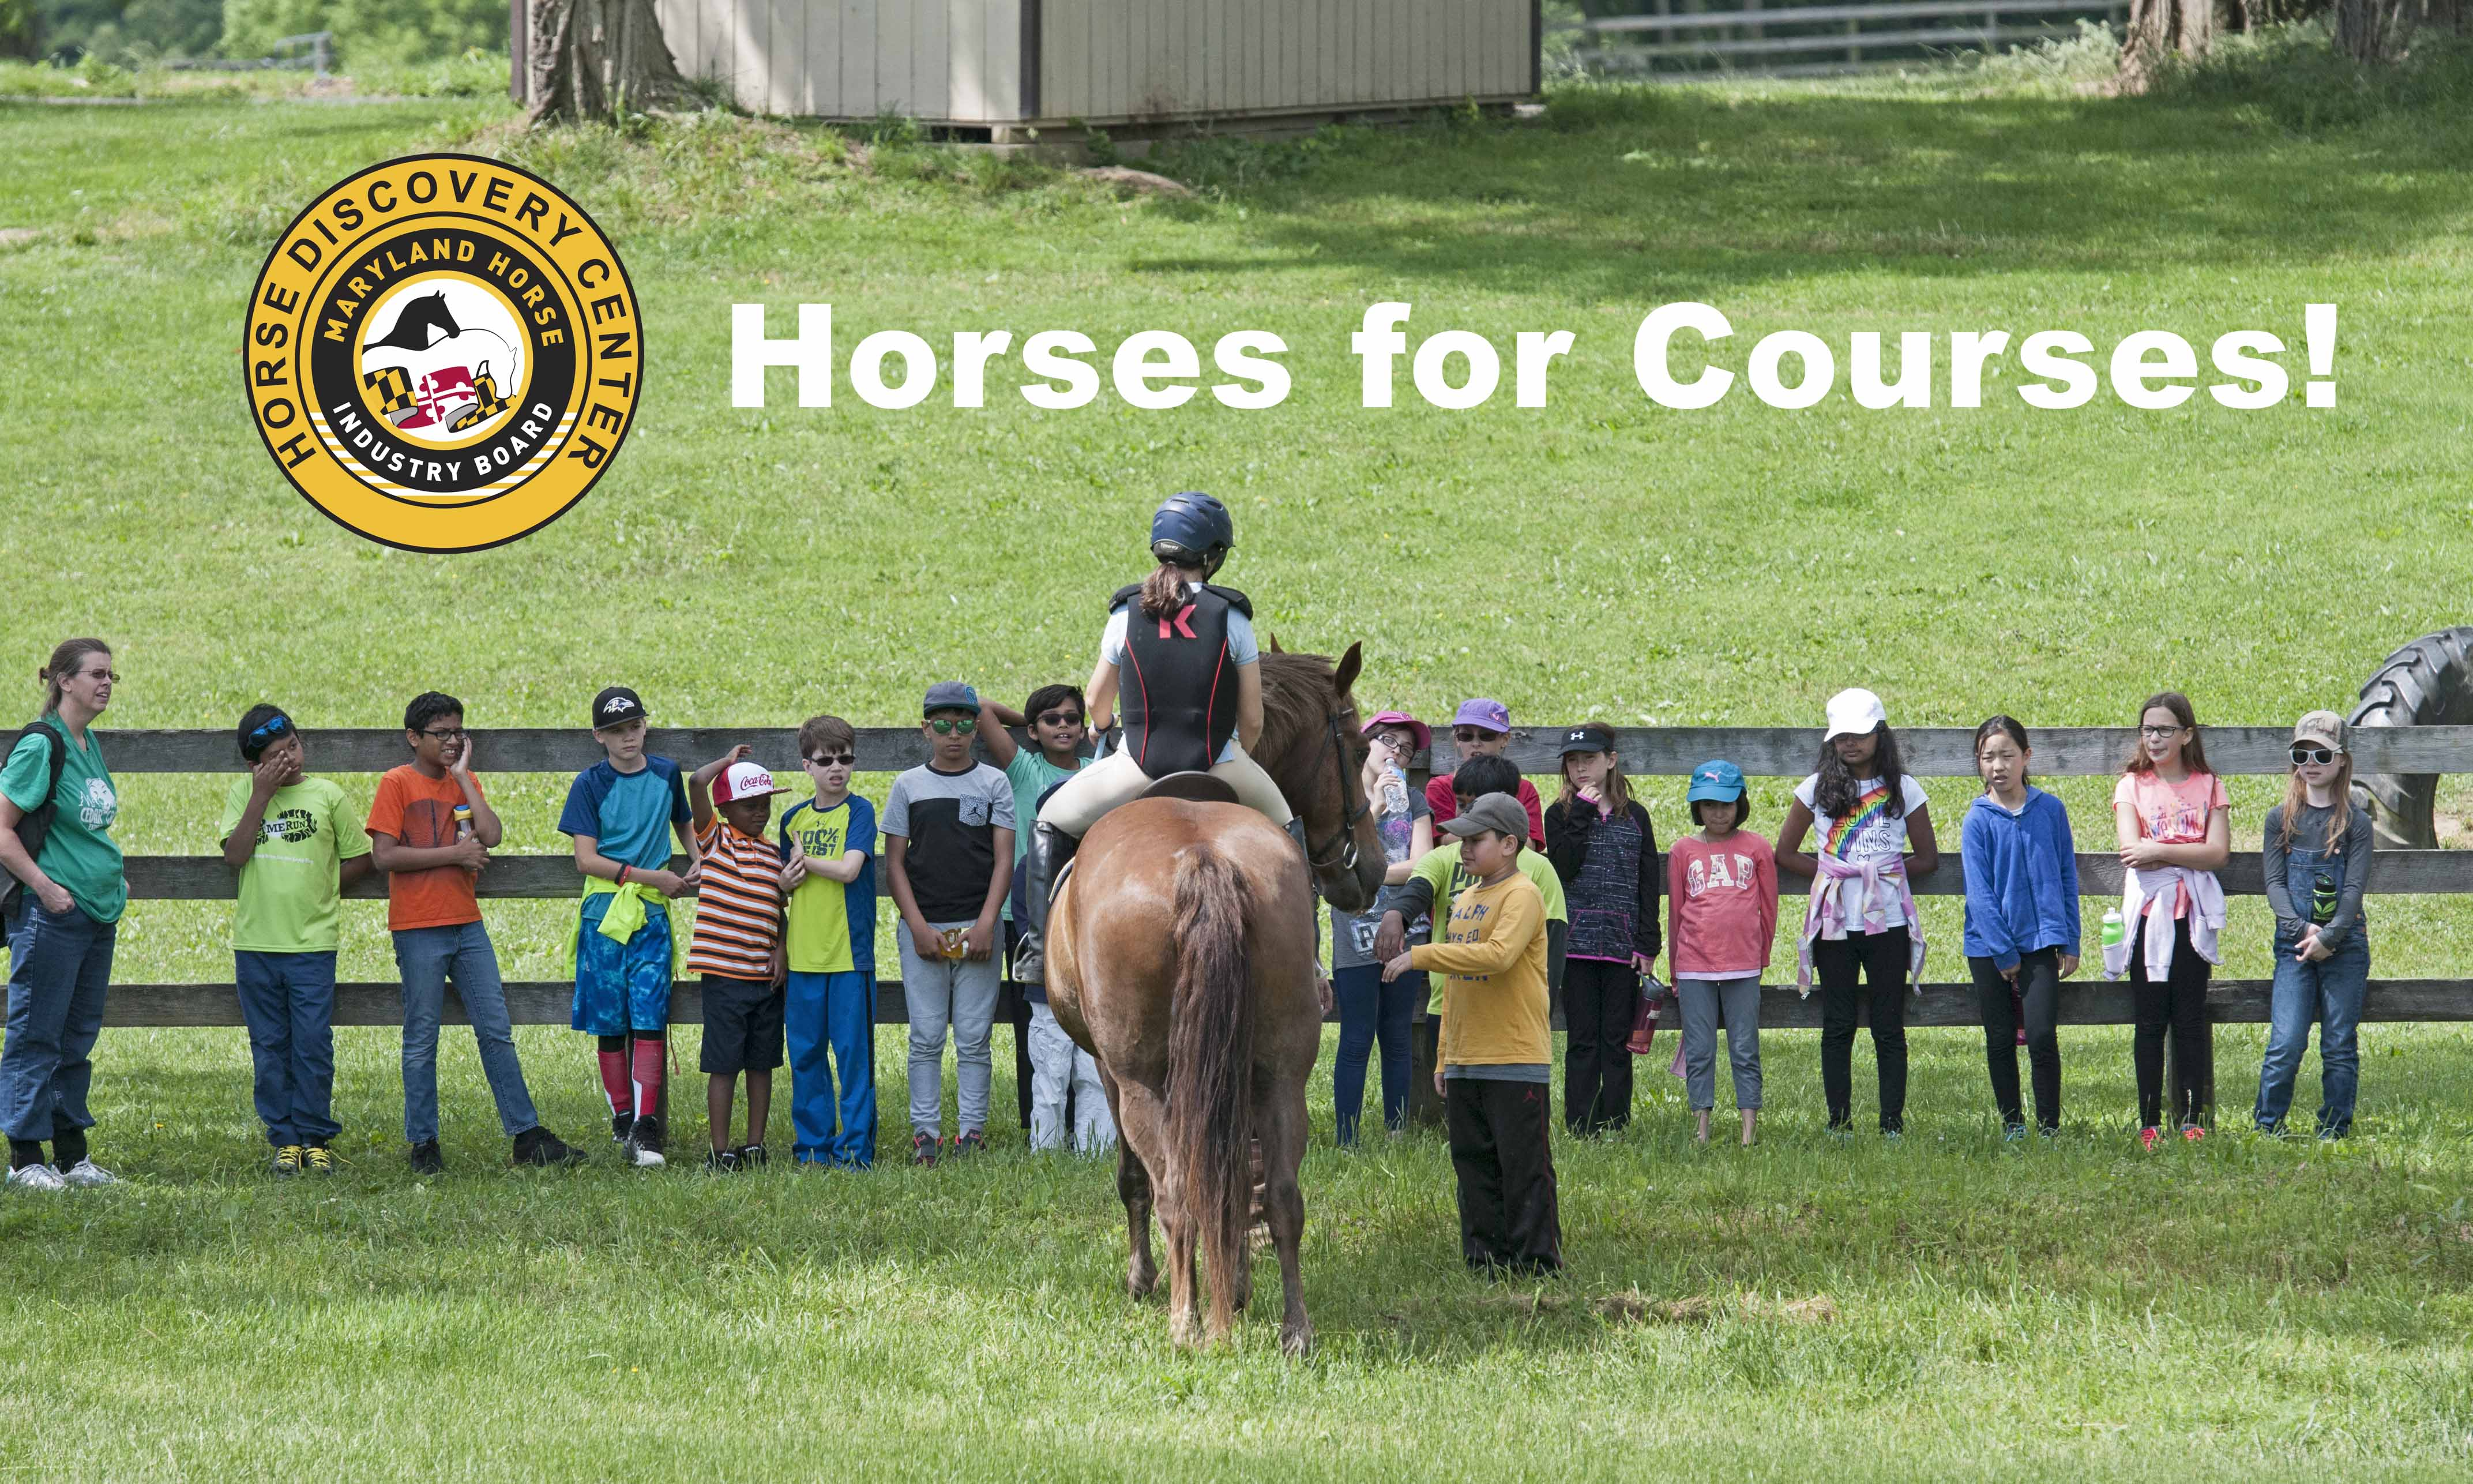 Horses for Courses!